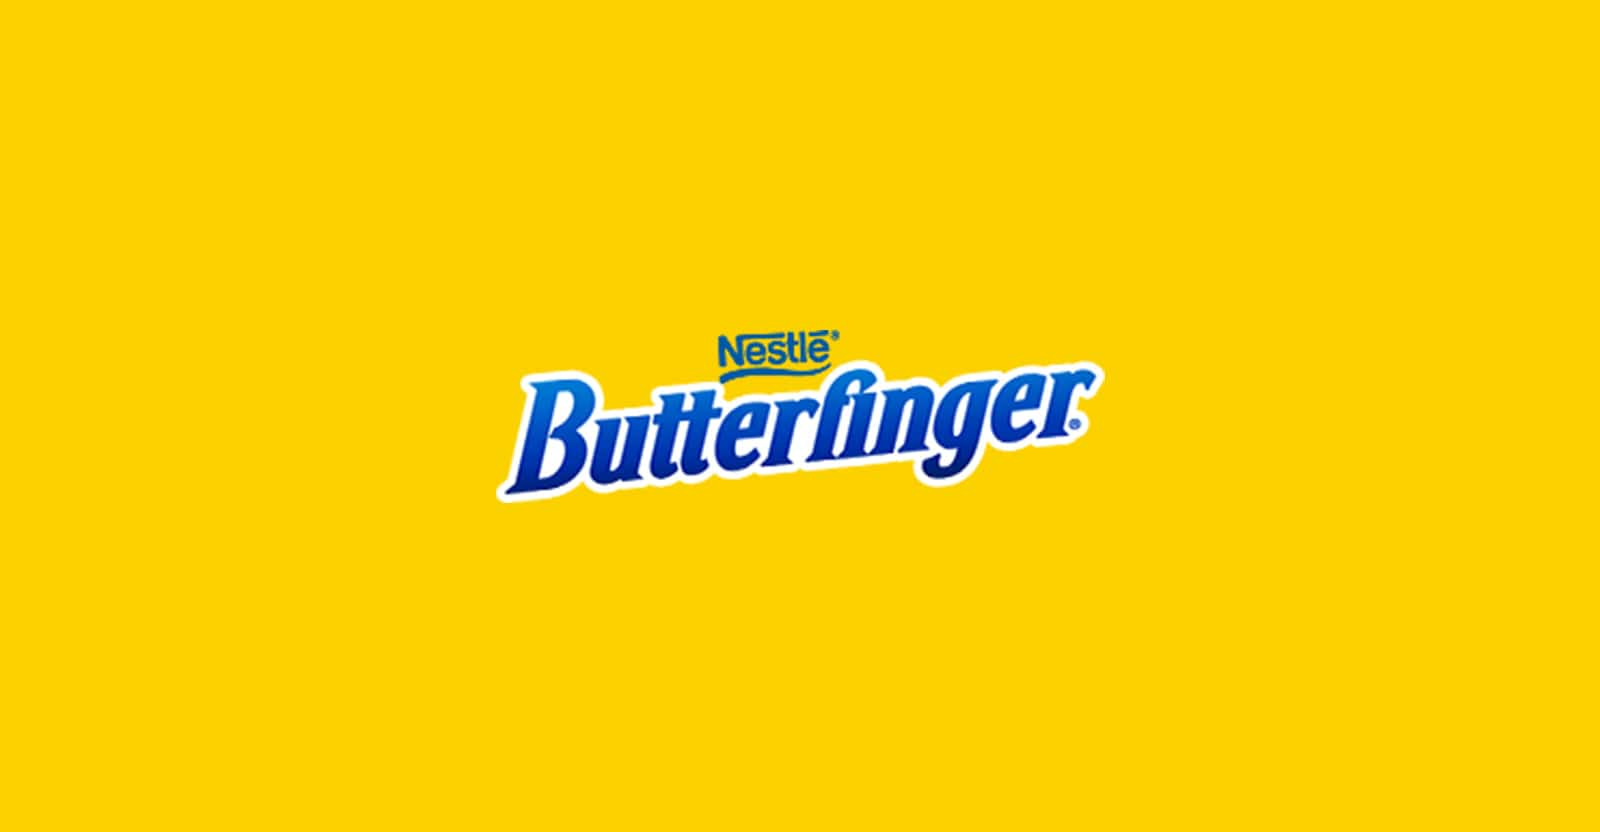 are butterfingers gluten-free